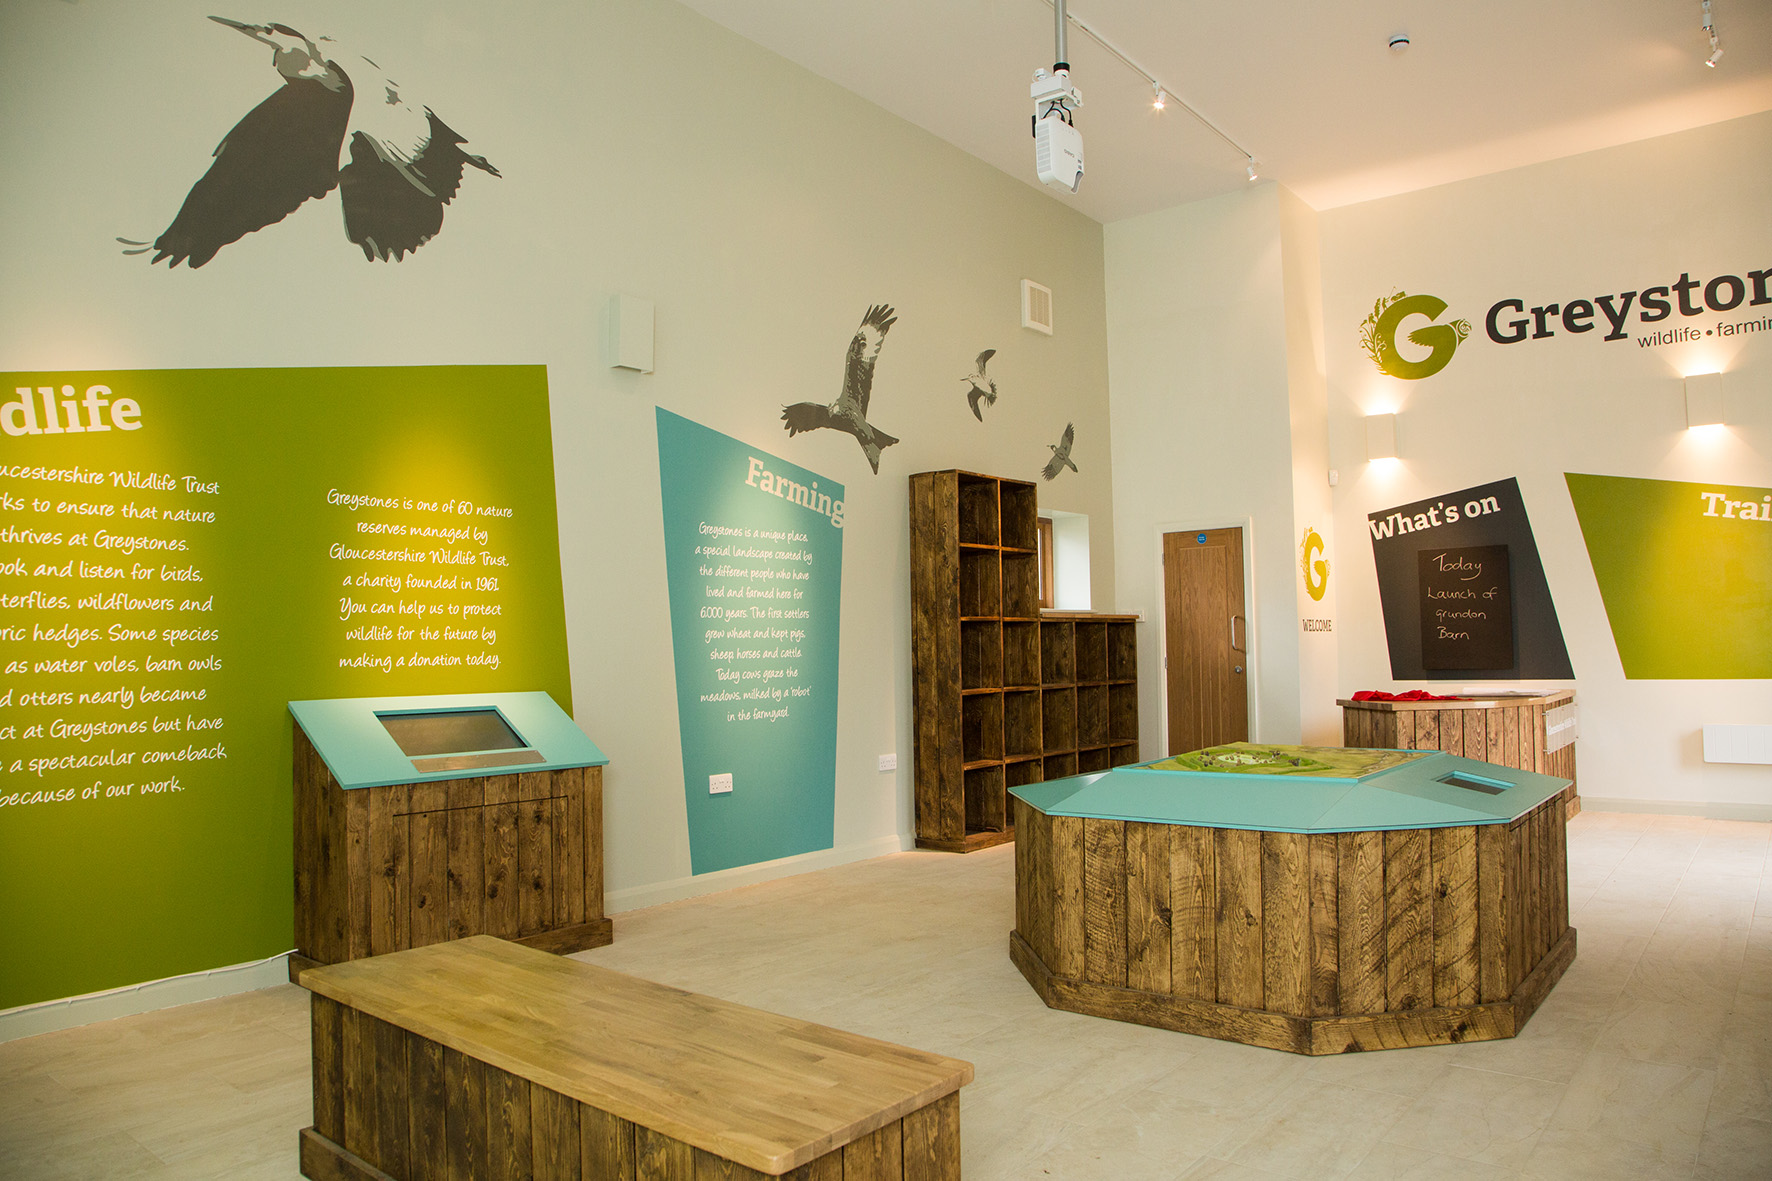 The ancient barn at Greystones Farm has been restored and equipped with a digital wildlife quiz, an interactive map and numerous traditional activities for visitors to enjoy.